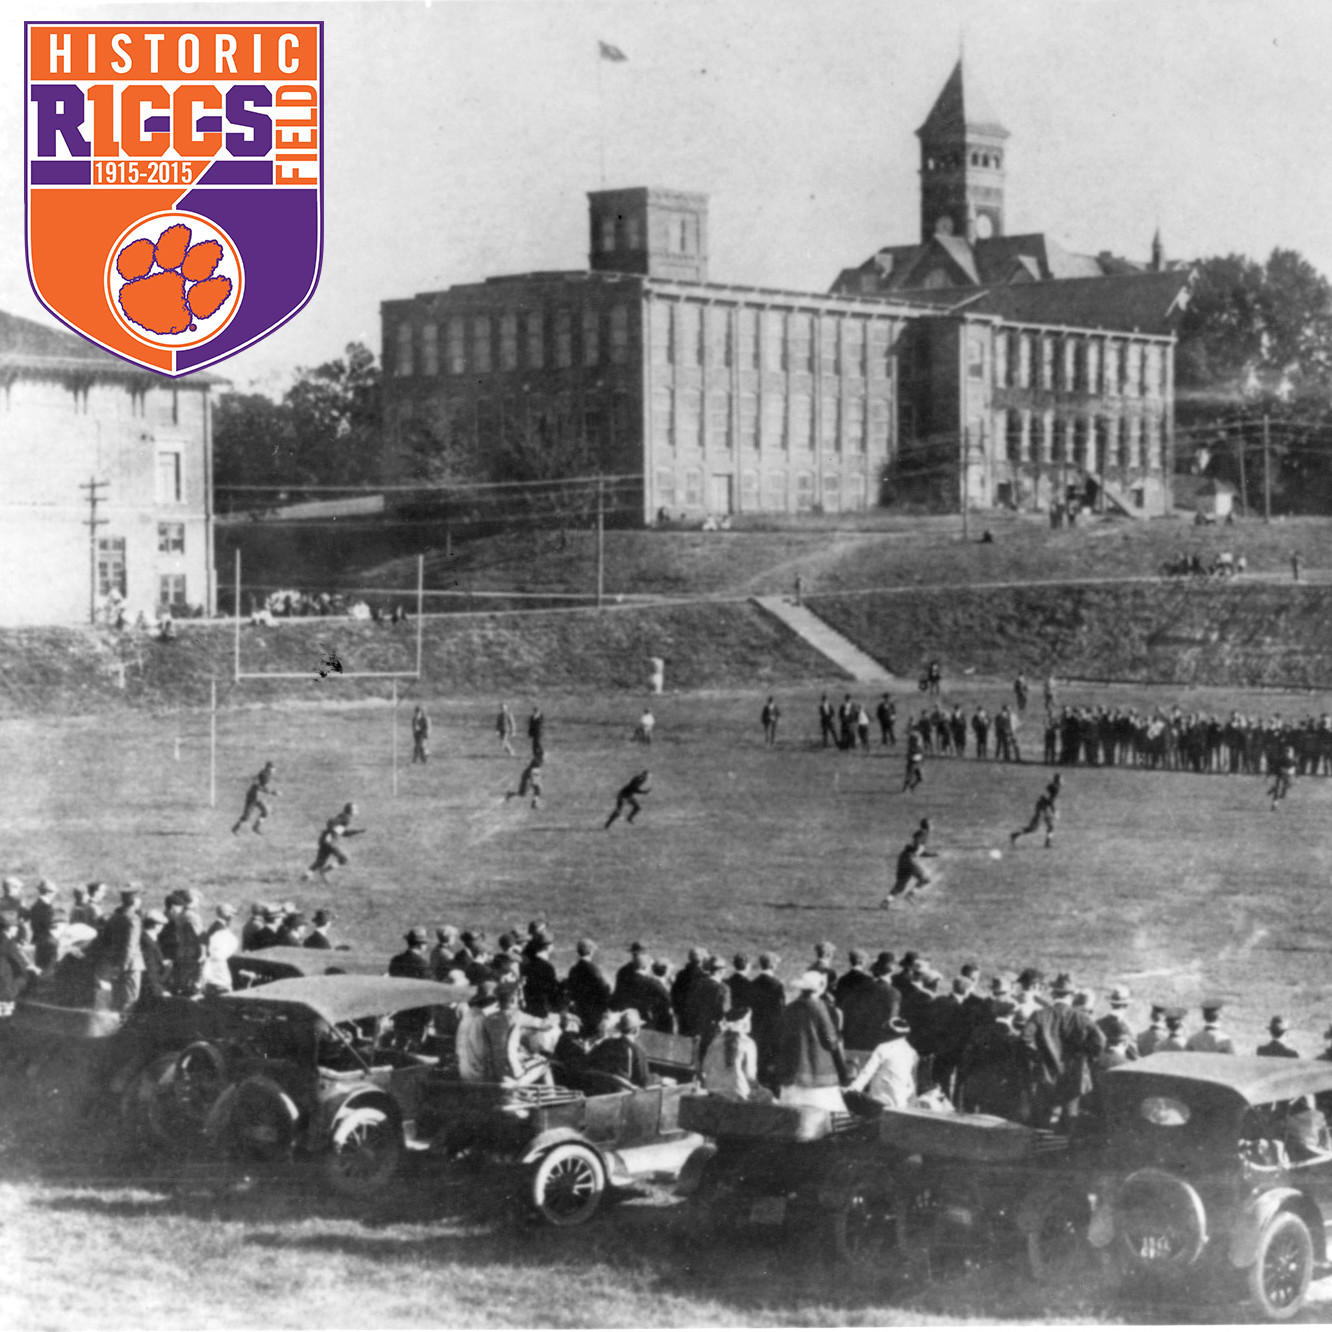 Clemson to Celebrate 100th Anniversary of Historic Riggs Field